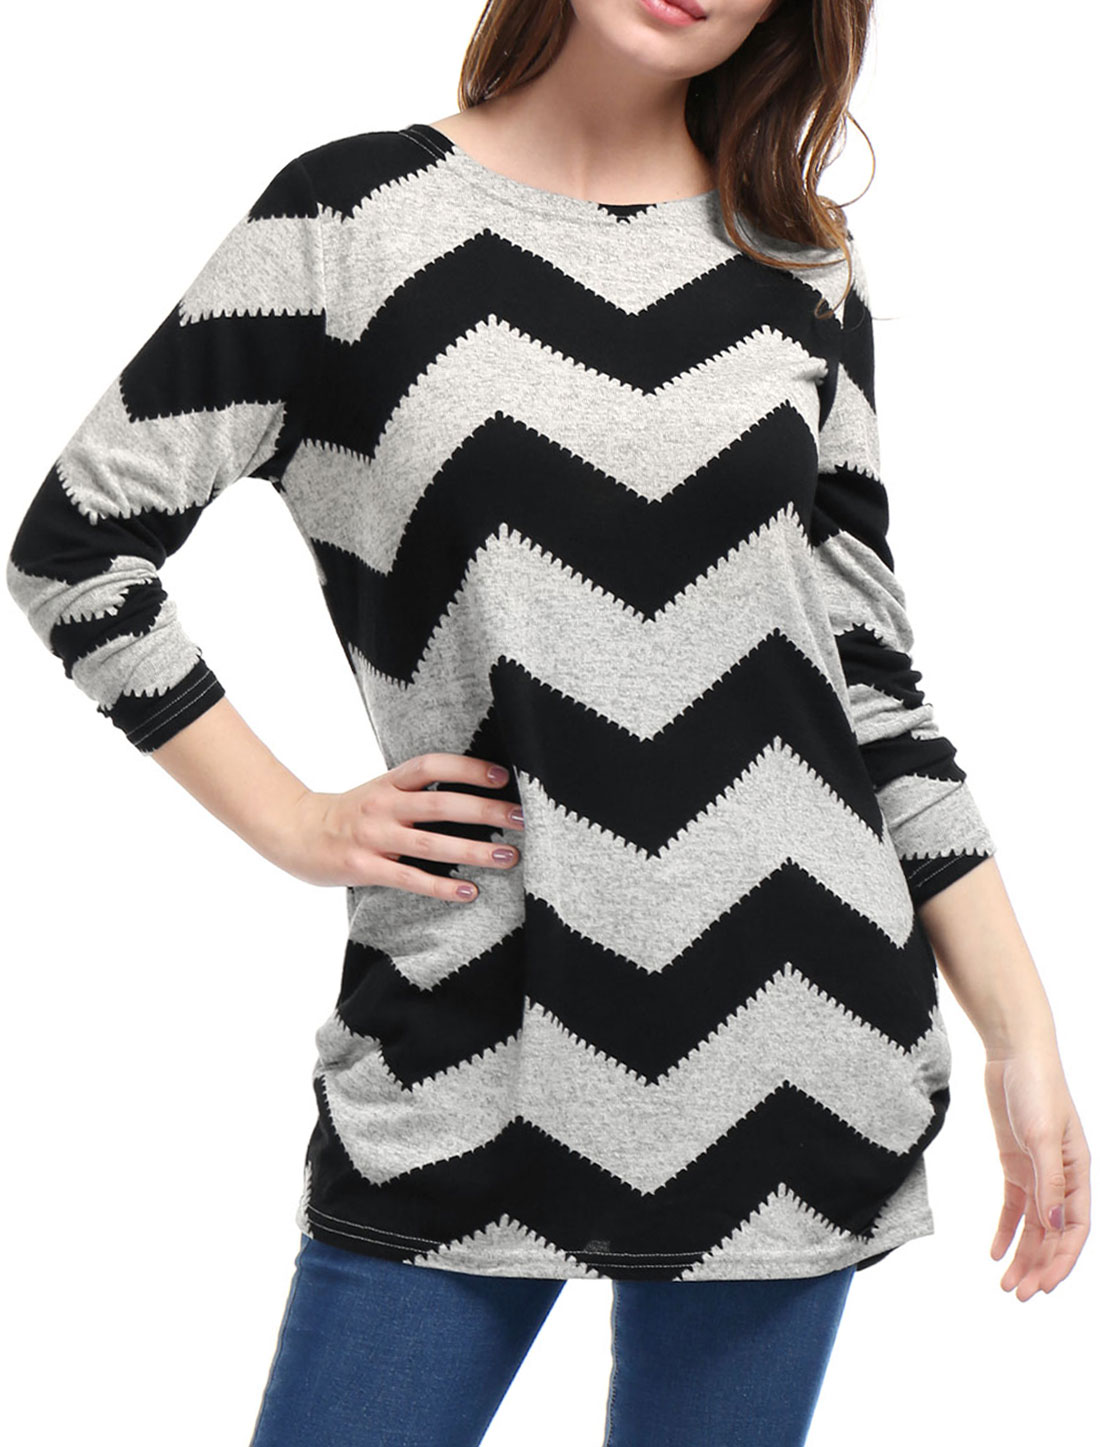 Woman Zig-Zag Pattern Knitted Relax Fit Tunic Top Black Gray S